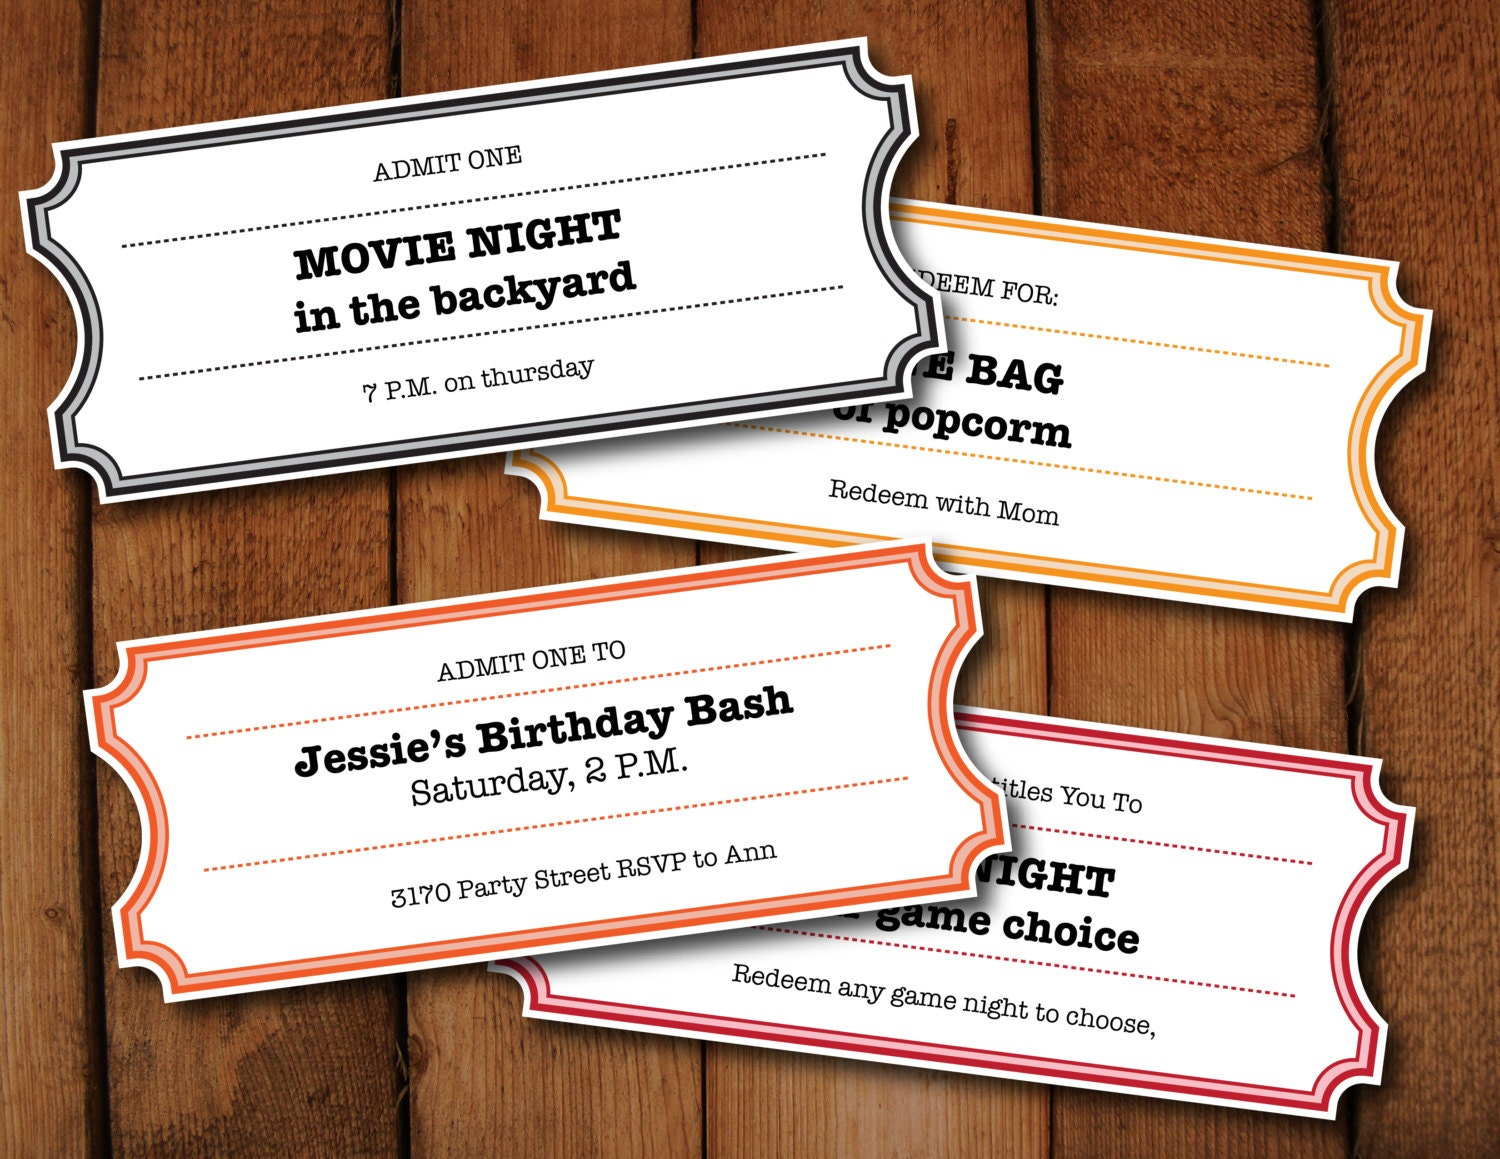 Printable Coupons Tickets Vouchers Movie Night Colors